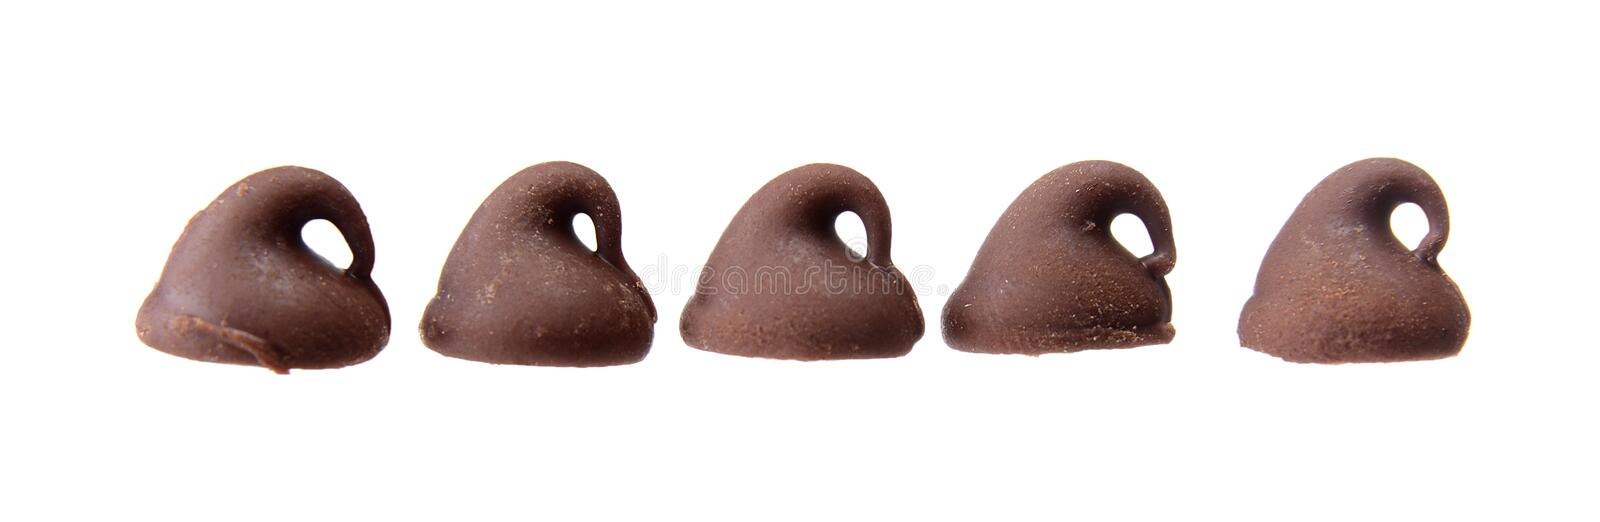 Five Chocolate Chips in a Row Isolated on White stock photo